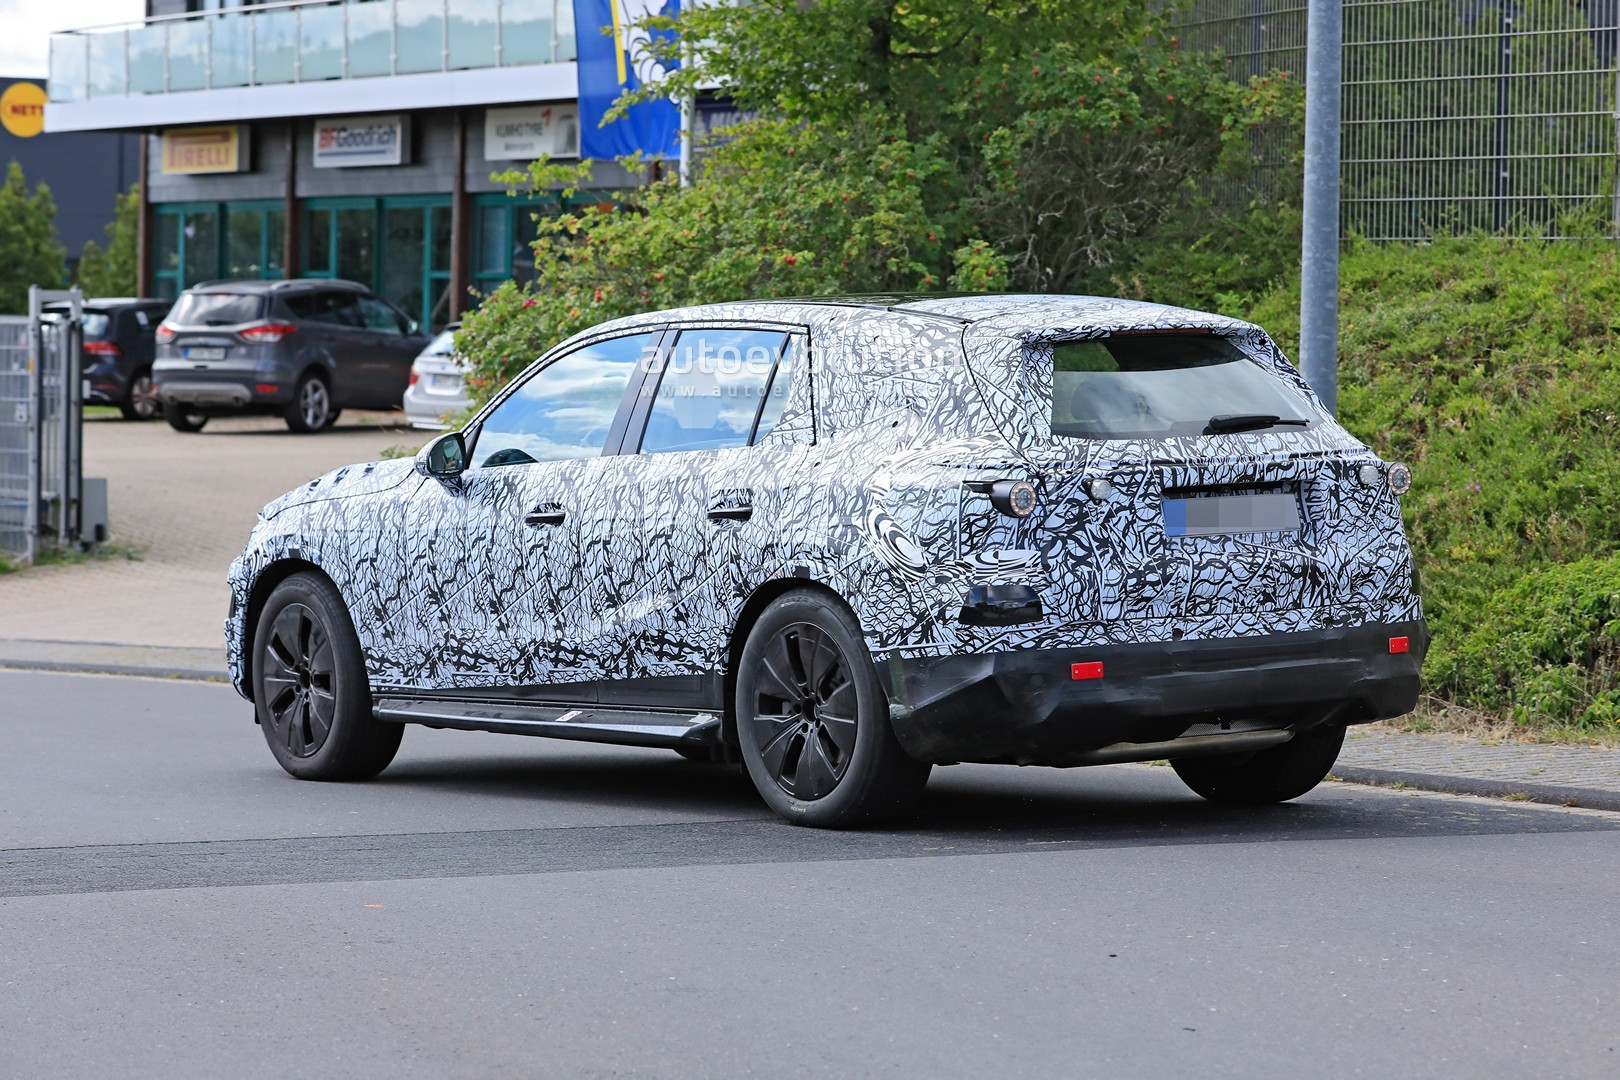 2021 - [Mercedes-Benz] GLC II - Page 2 All-new-2022-mercedes-glc-class-spied-getting-to-be-the-king-of-cuvs_18